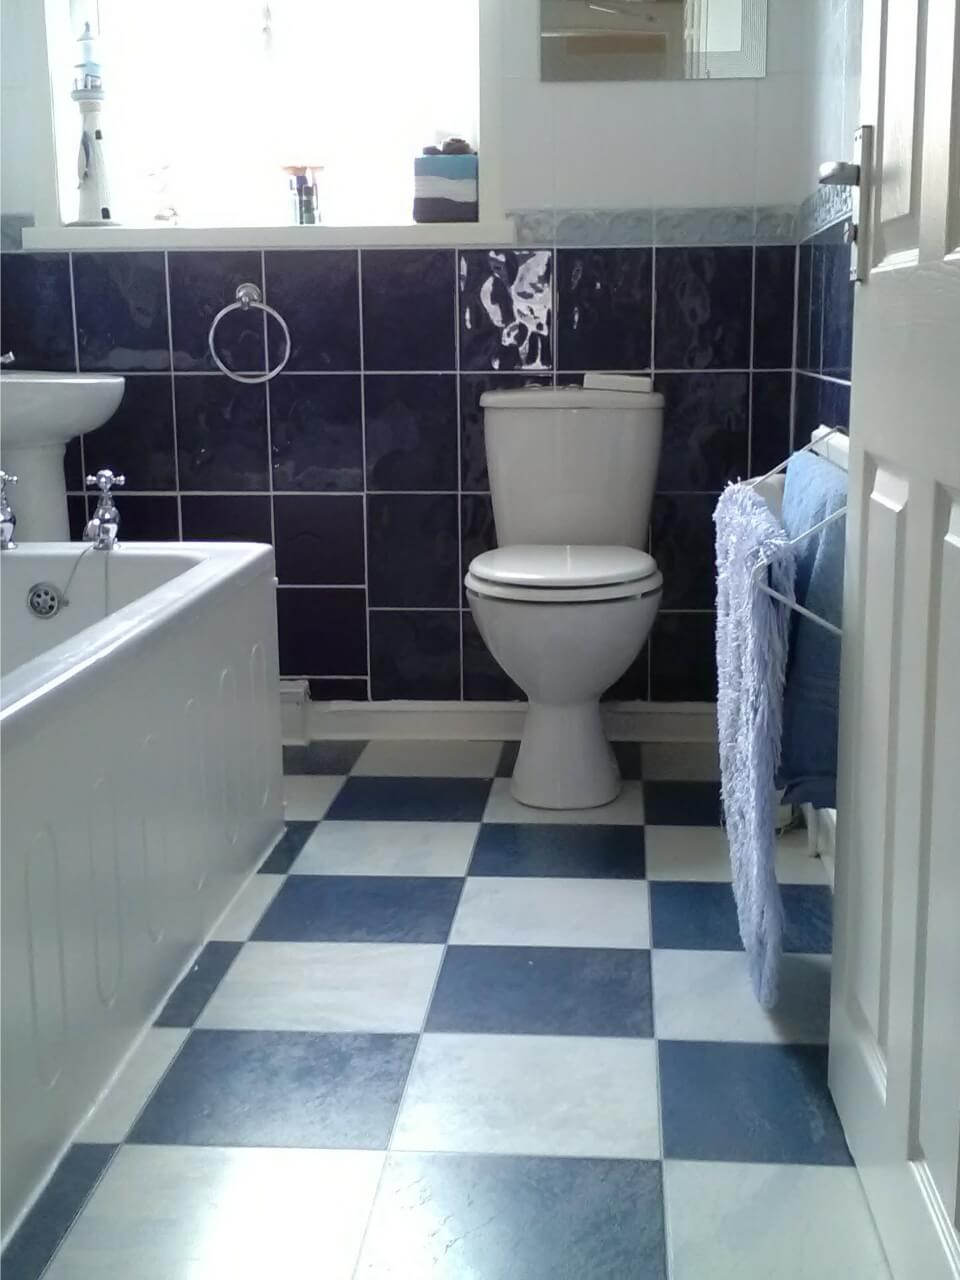 In our gallery St Hilda Guest House shared bathroom